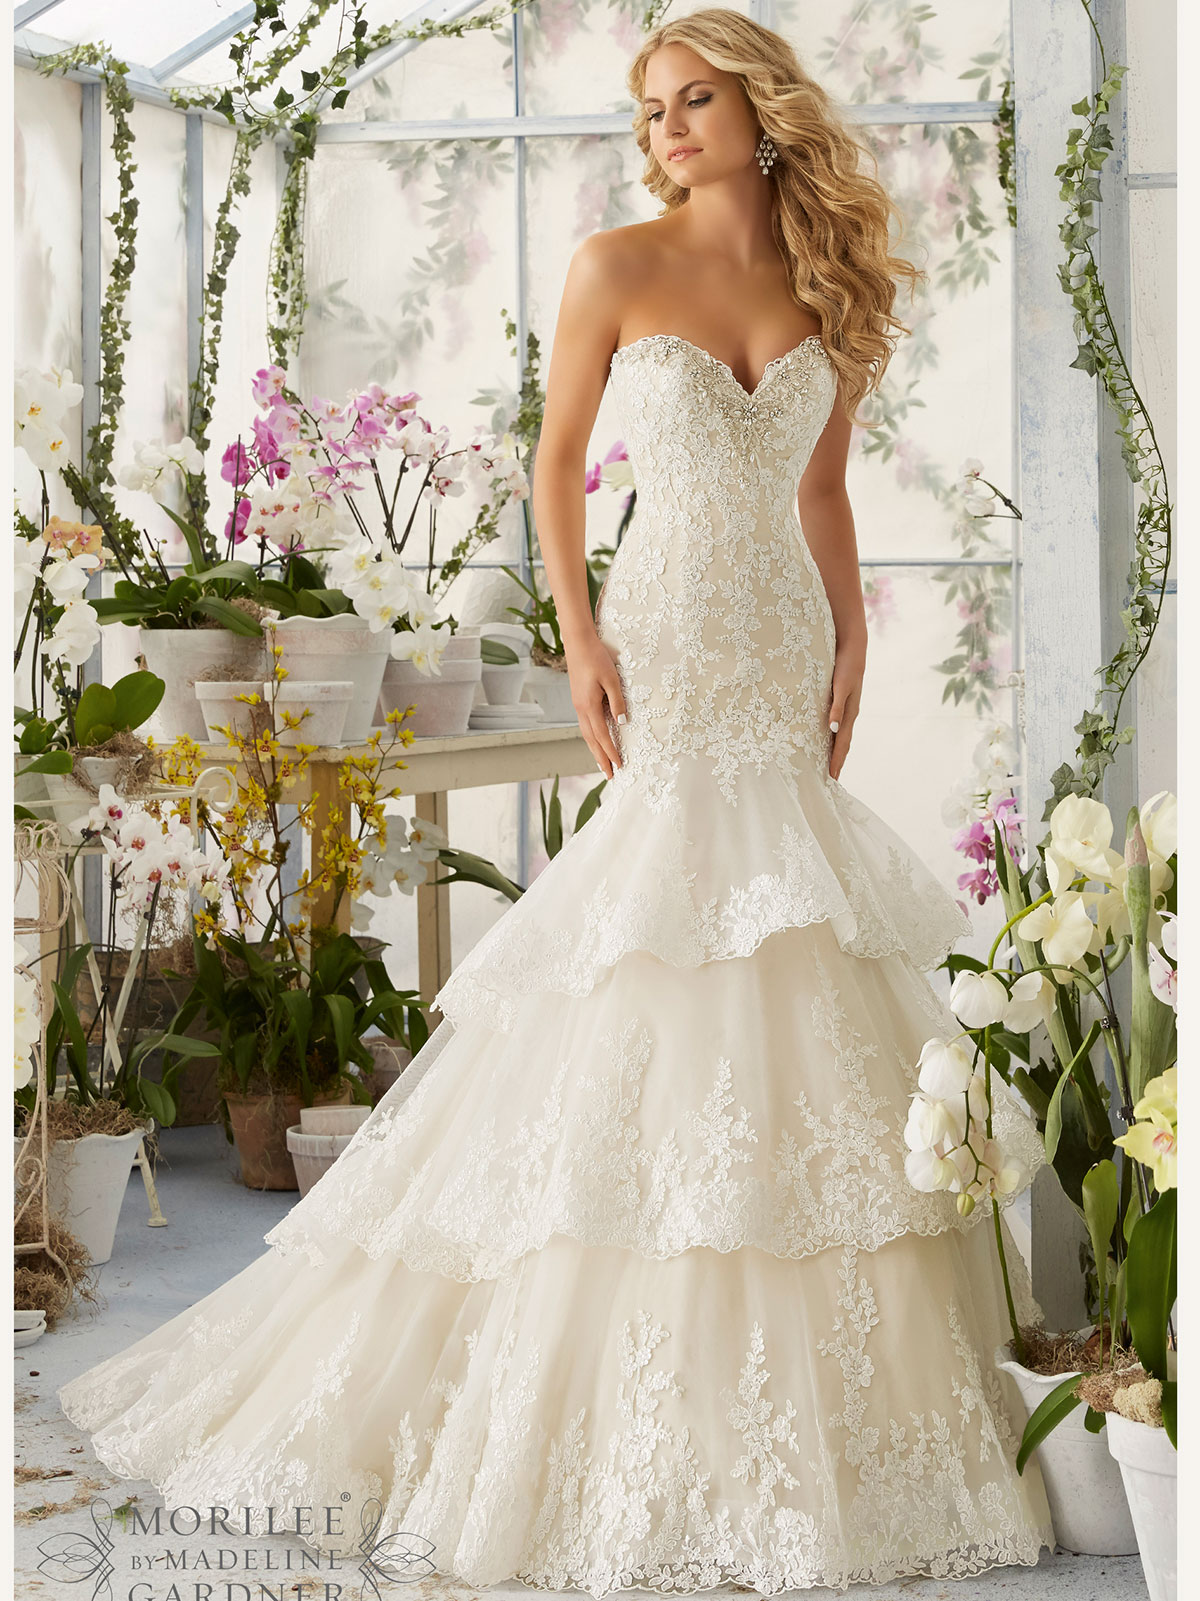 Mori Lee 2810 Sweetheart Beaded Mermaid Bridal Dress